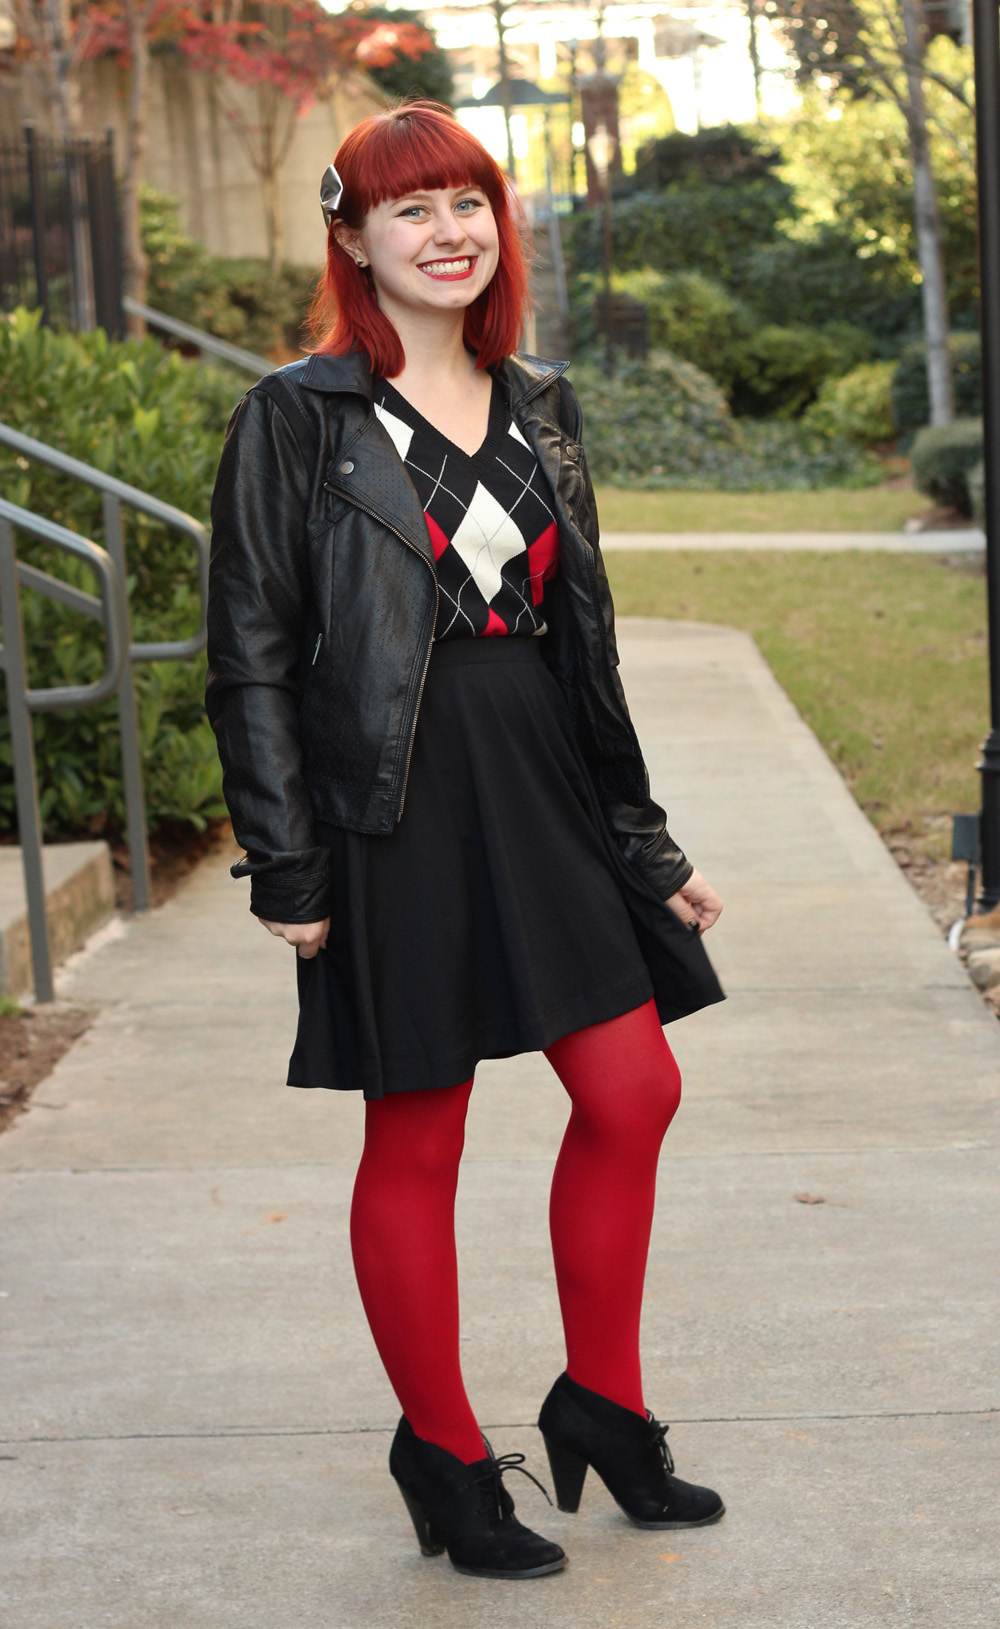 Argyle Sweater, Leather Jacket, Black Skater Skirt, and Red Tights